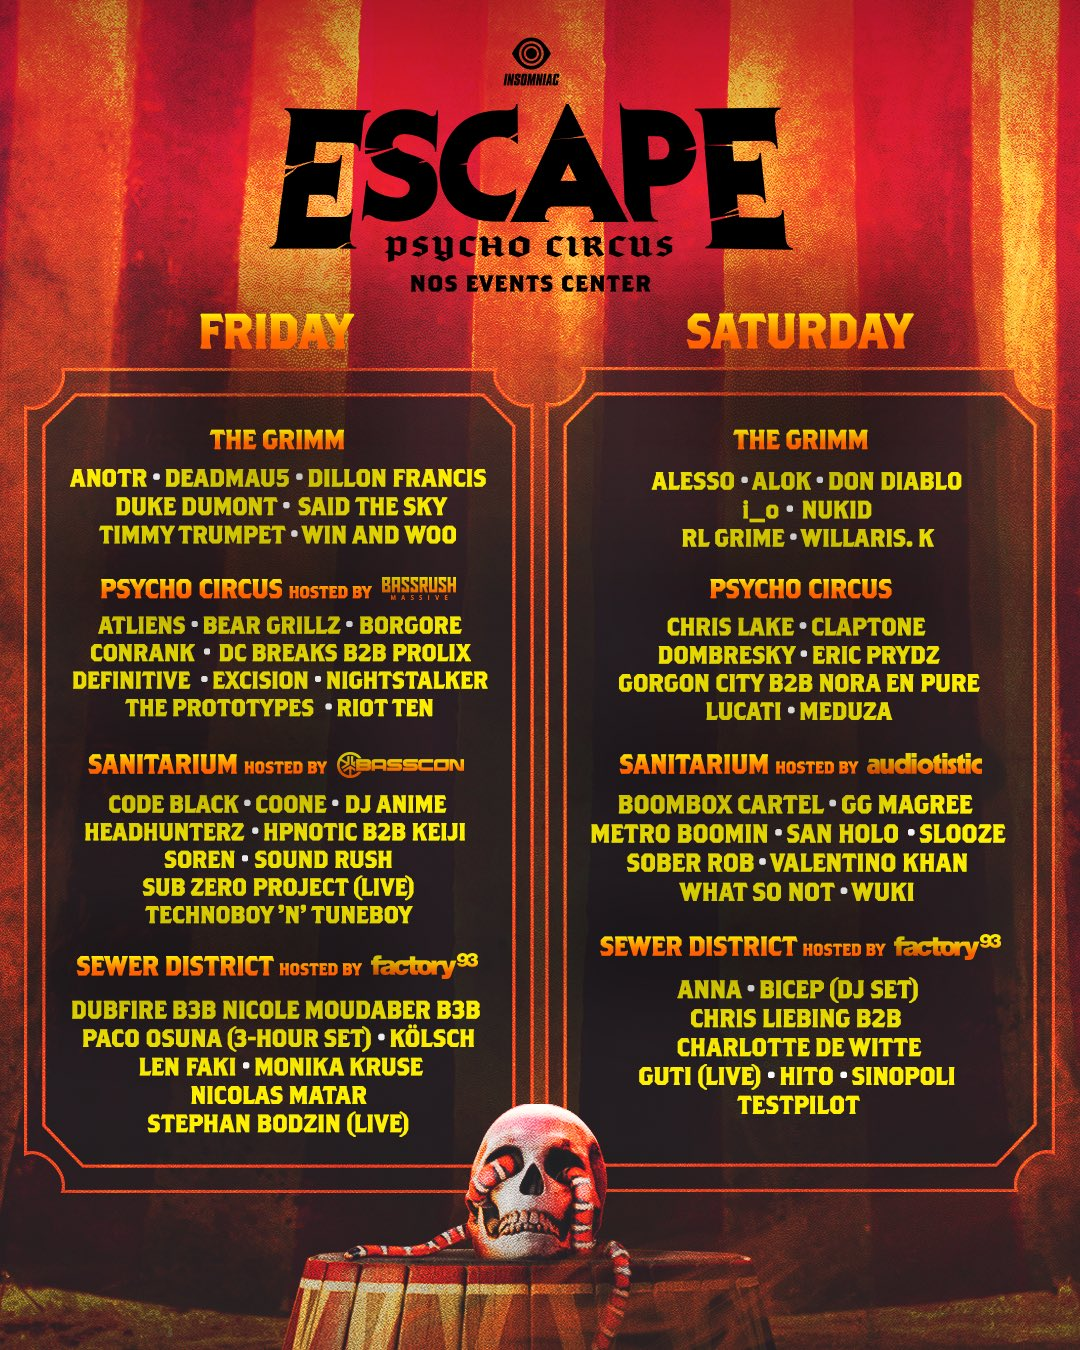 The Escape: Psycho Circus stage areas